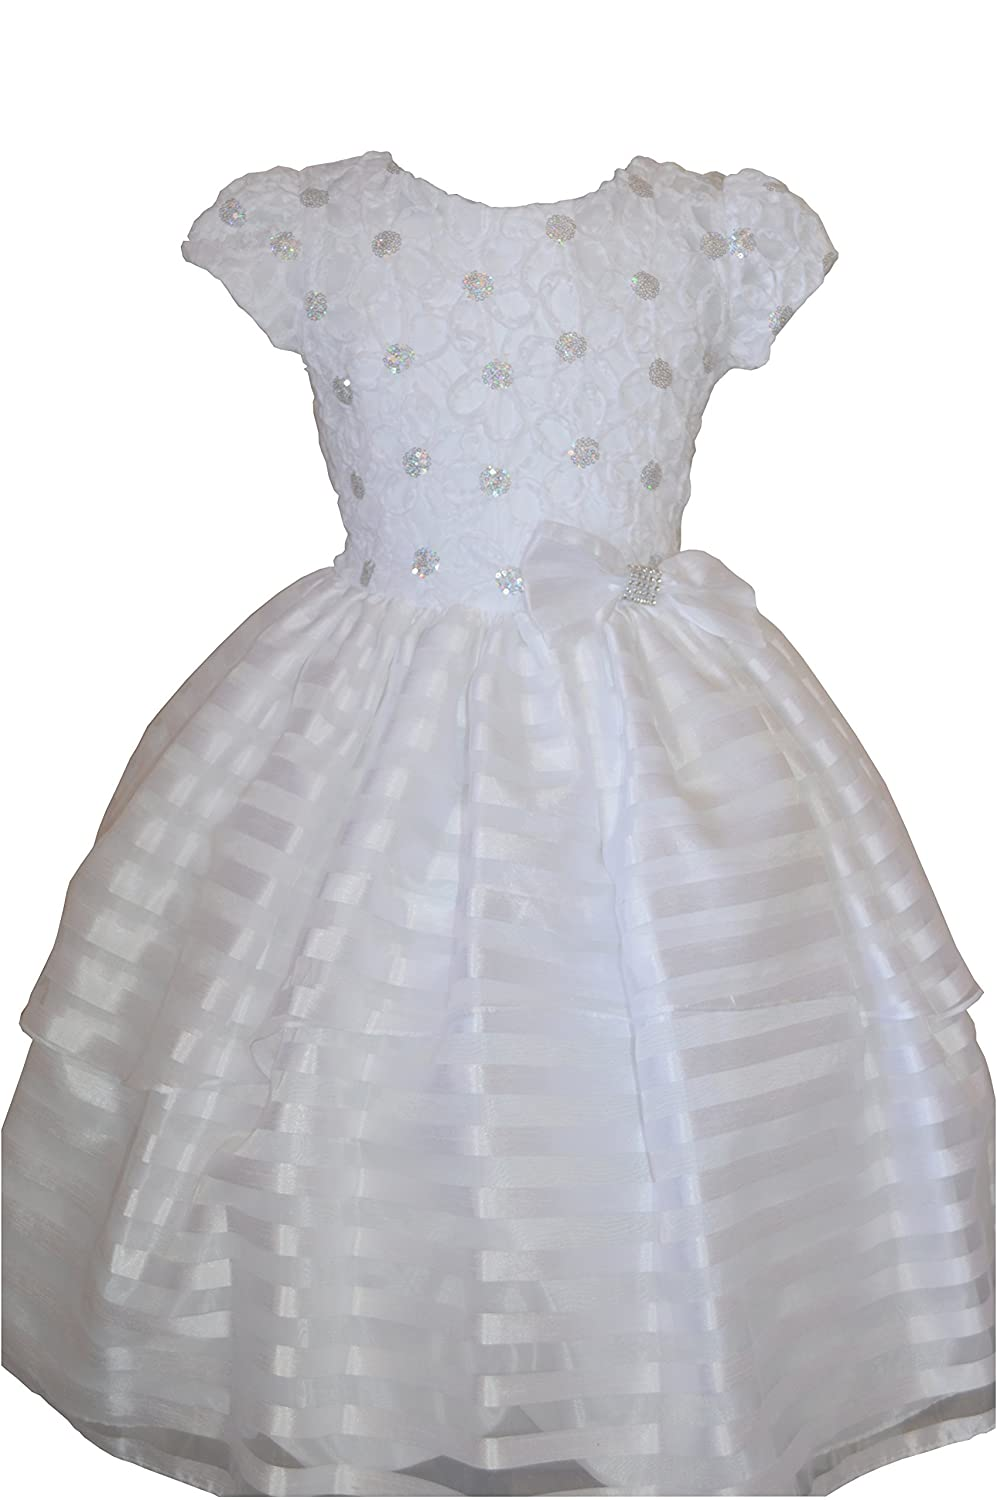 Amazon.com: White First Communion Or Baptism Dress for Girls with Sleeves (4): Clothing